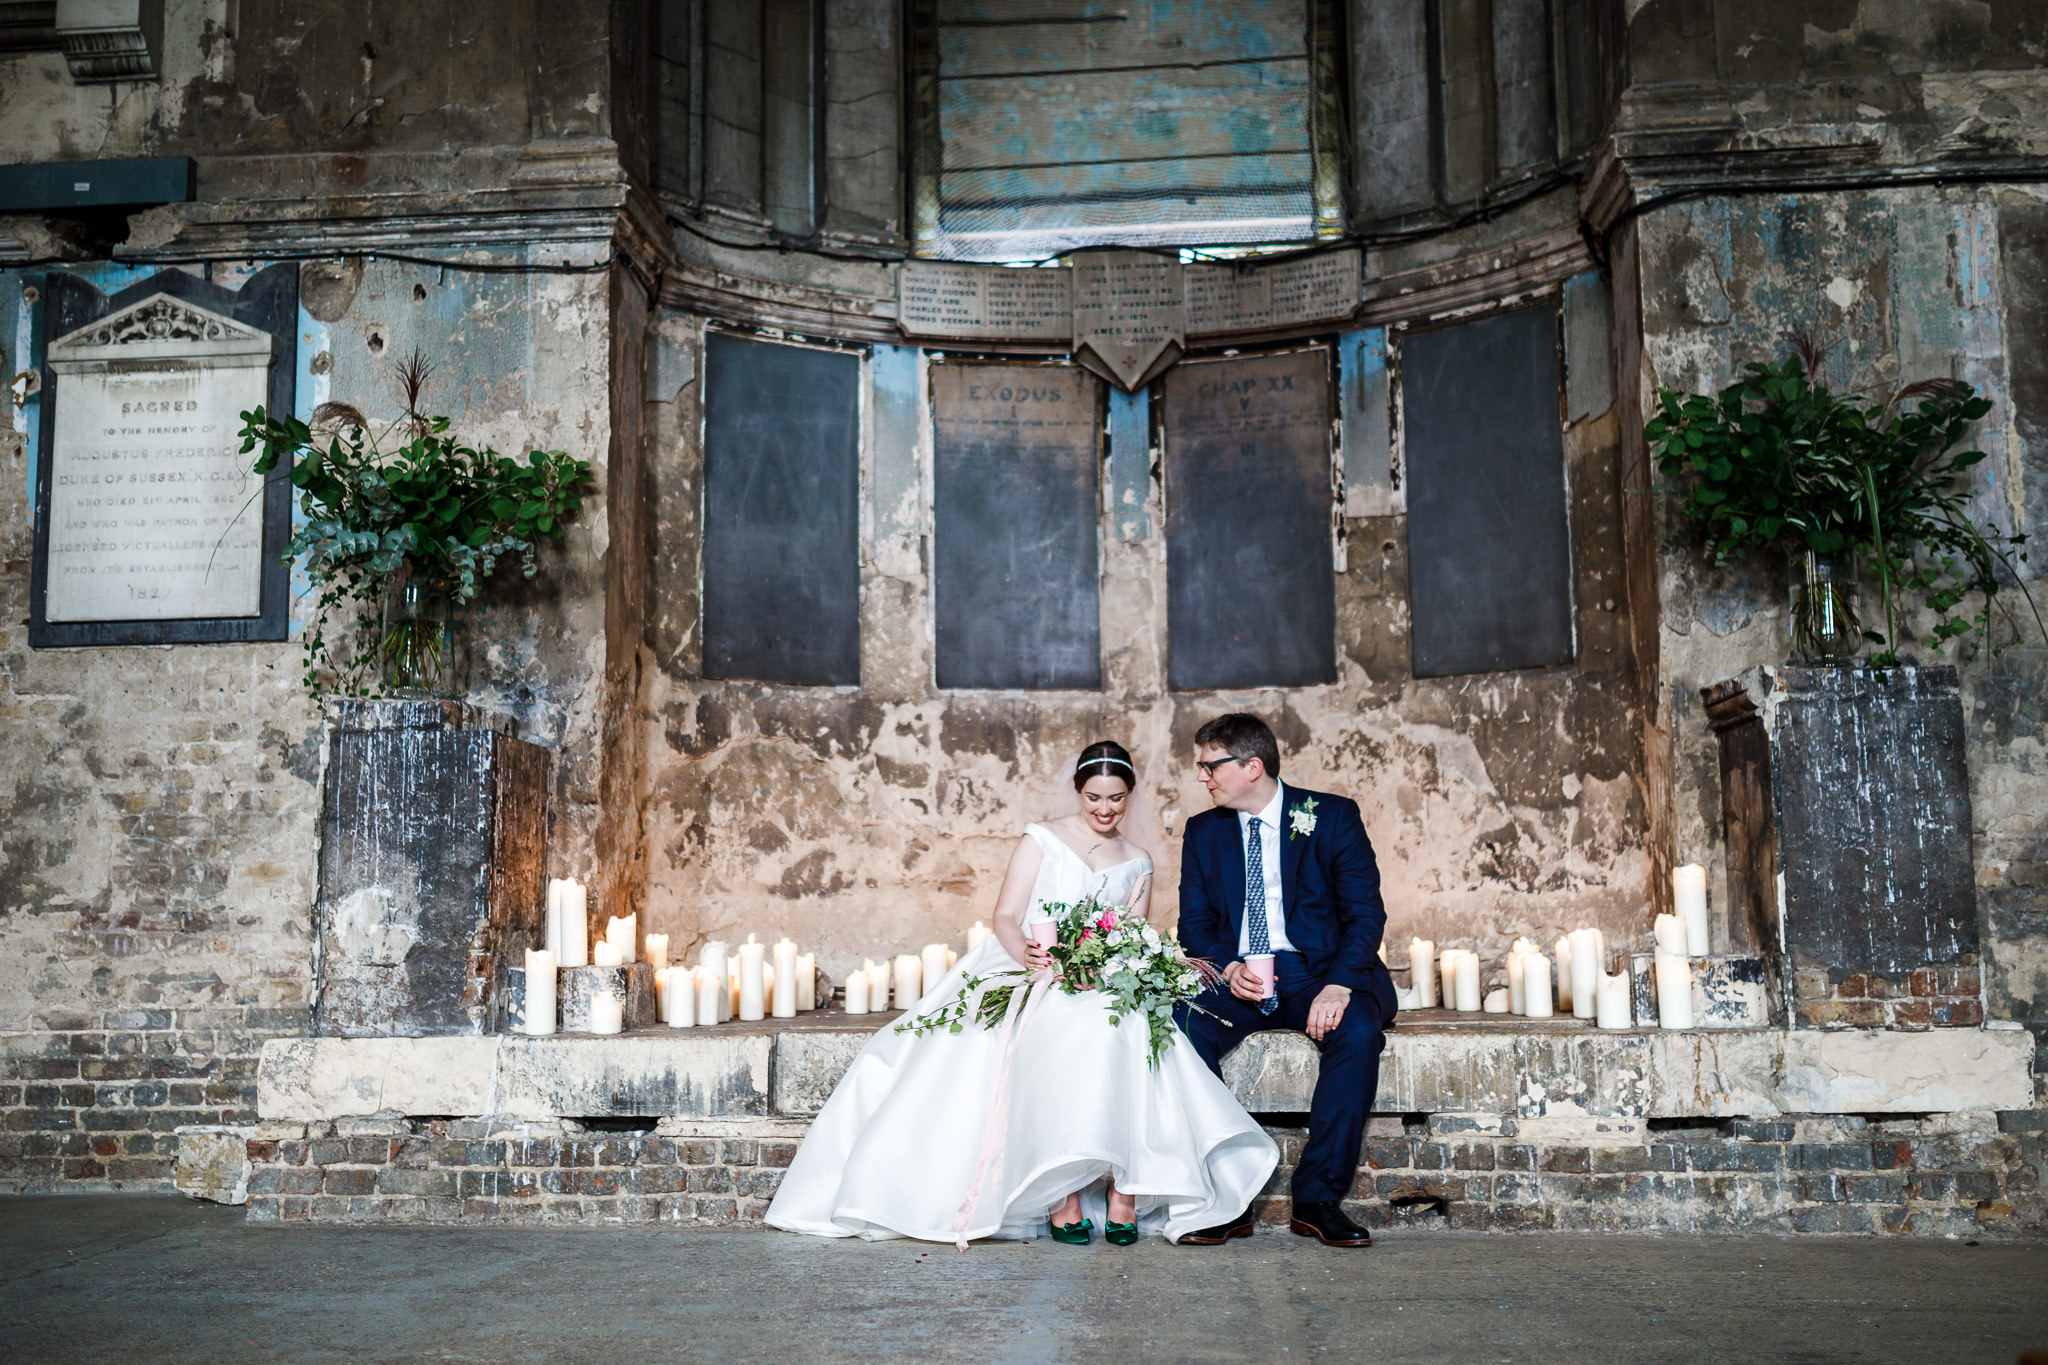 Super fun wedding at the Asylum in Peckham London